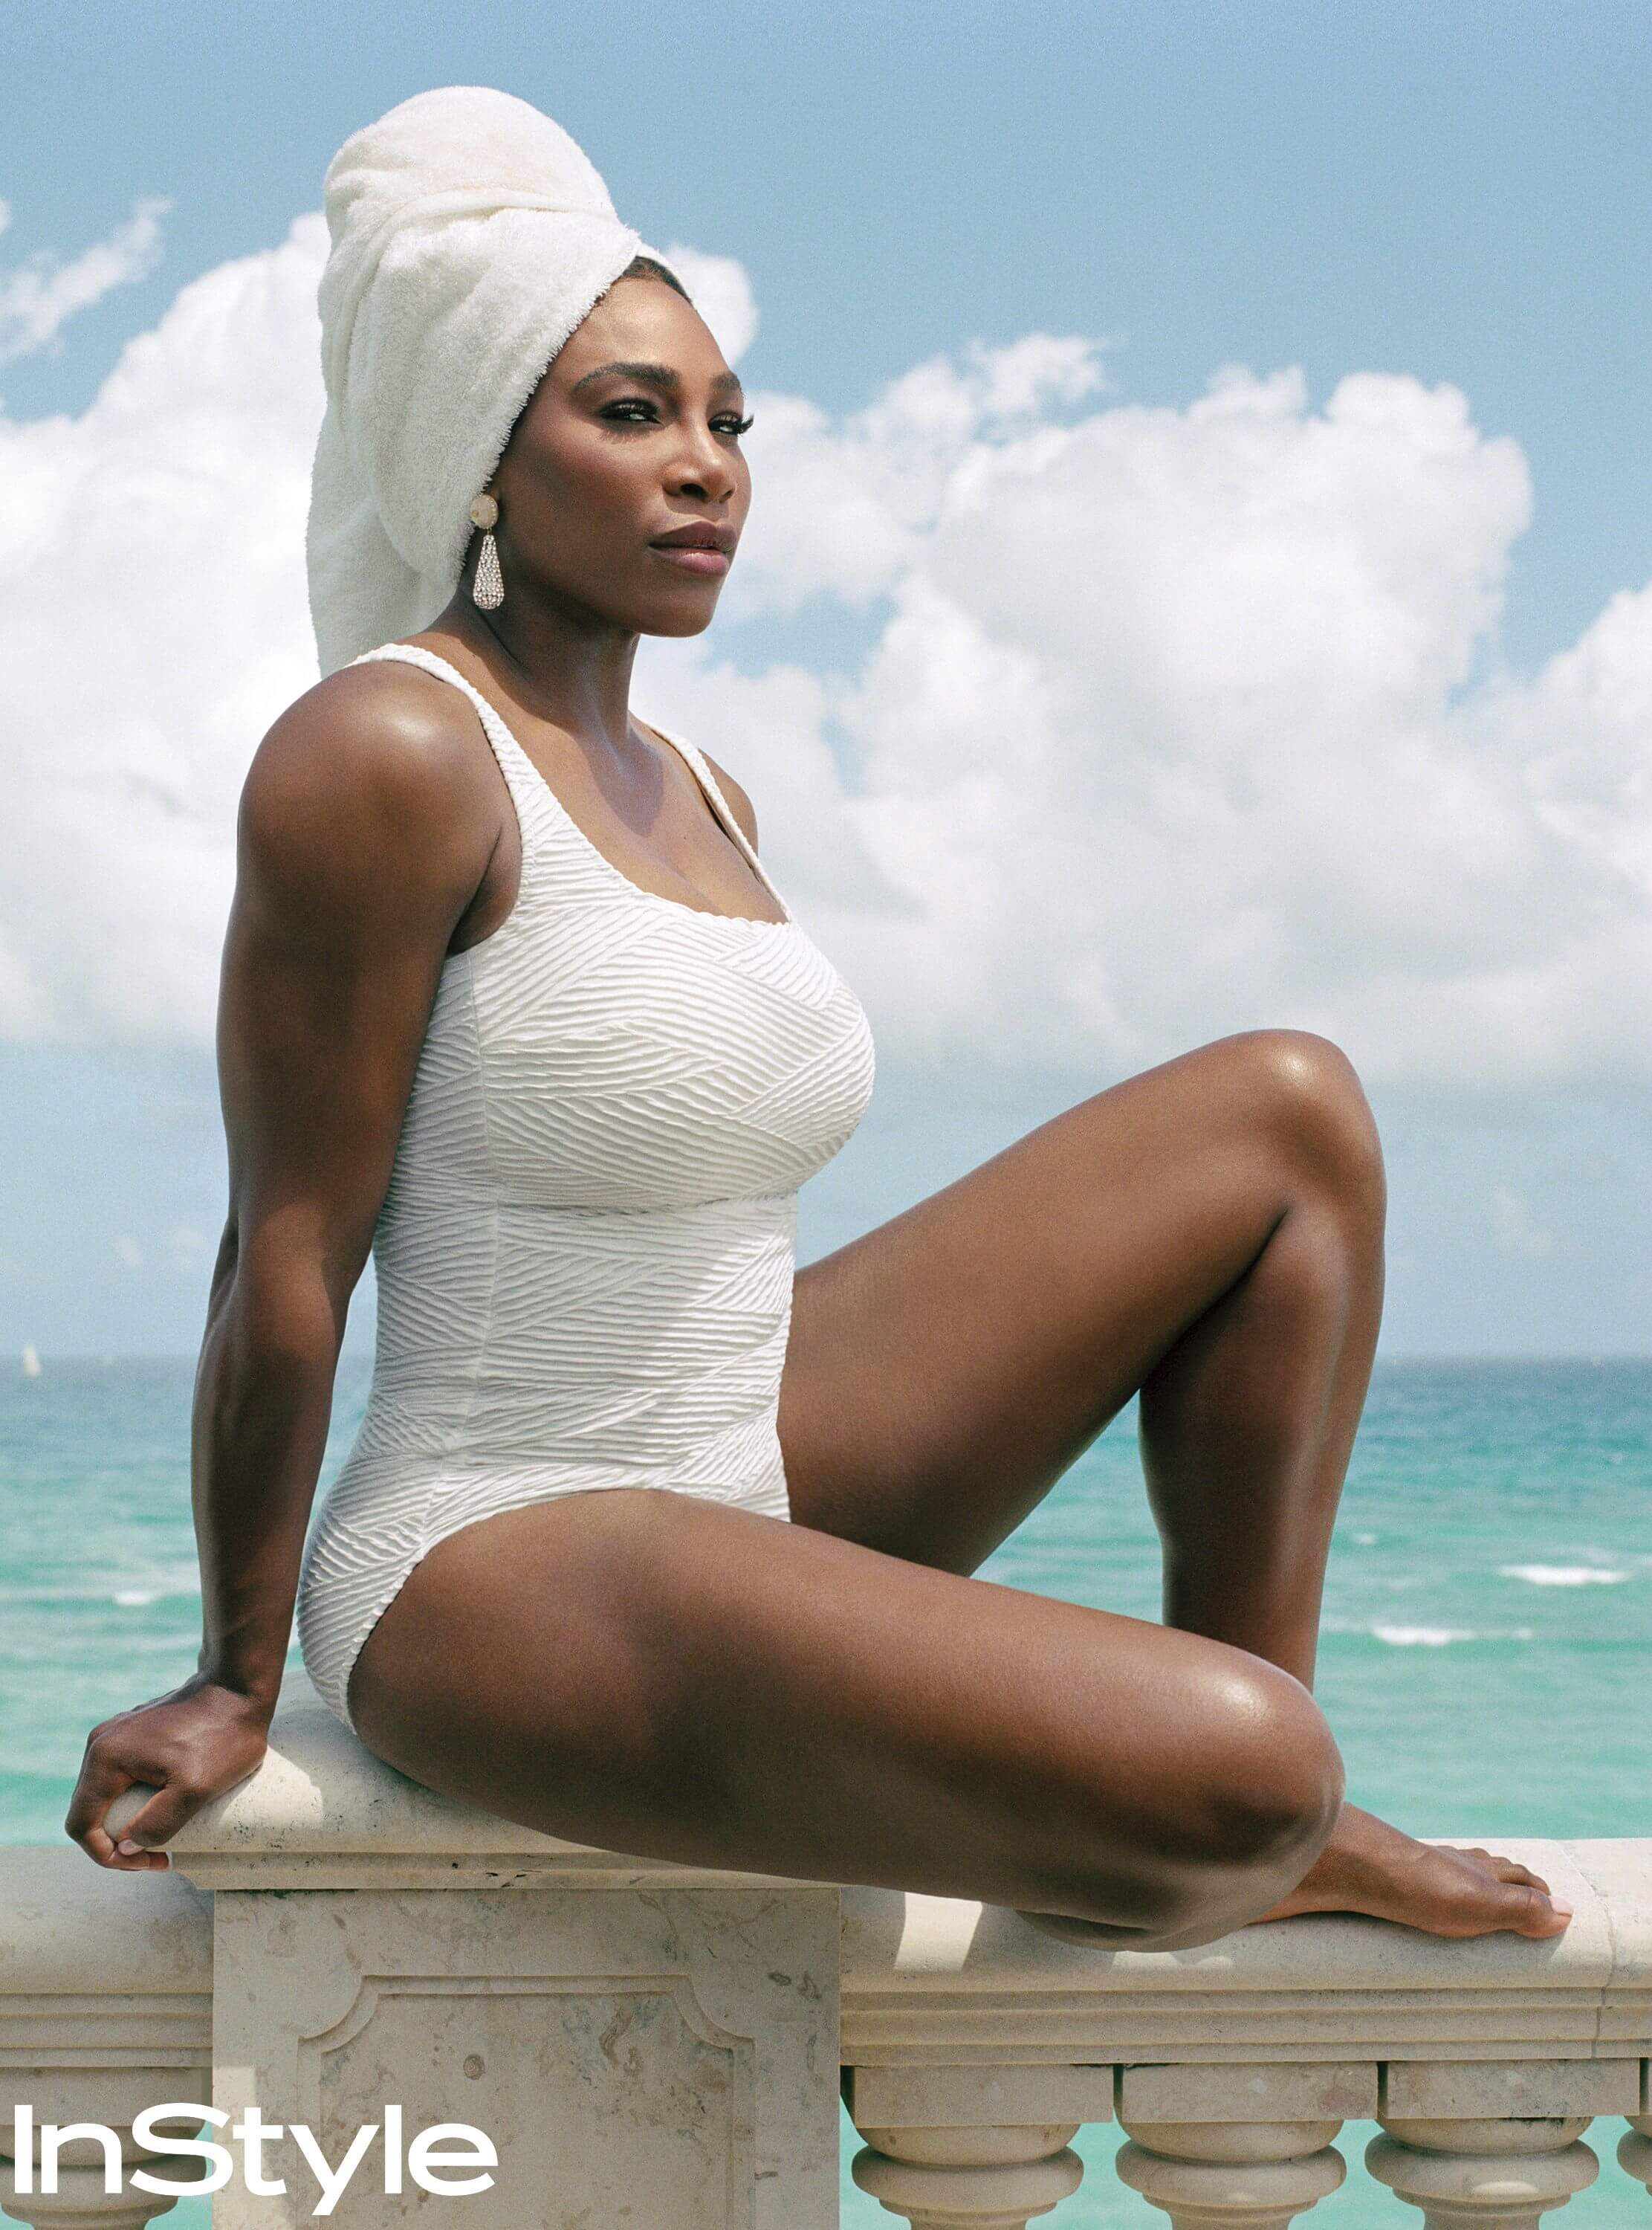 Serena Williams hto thigh